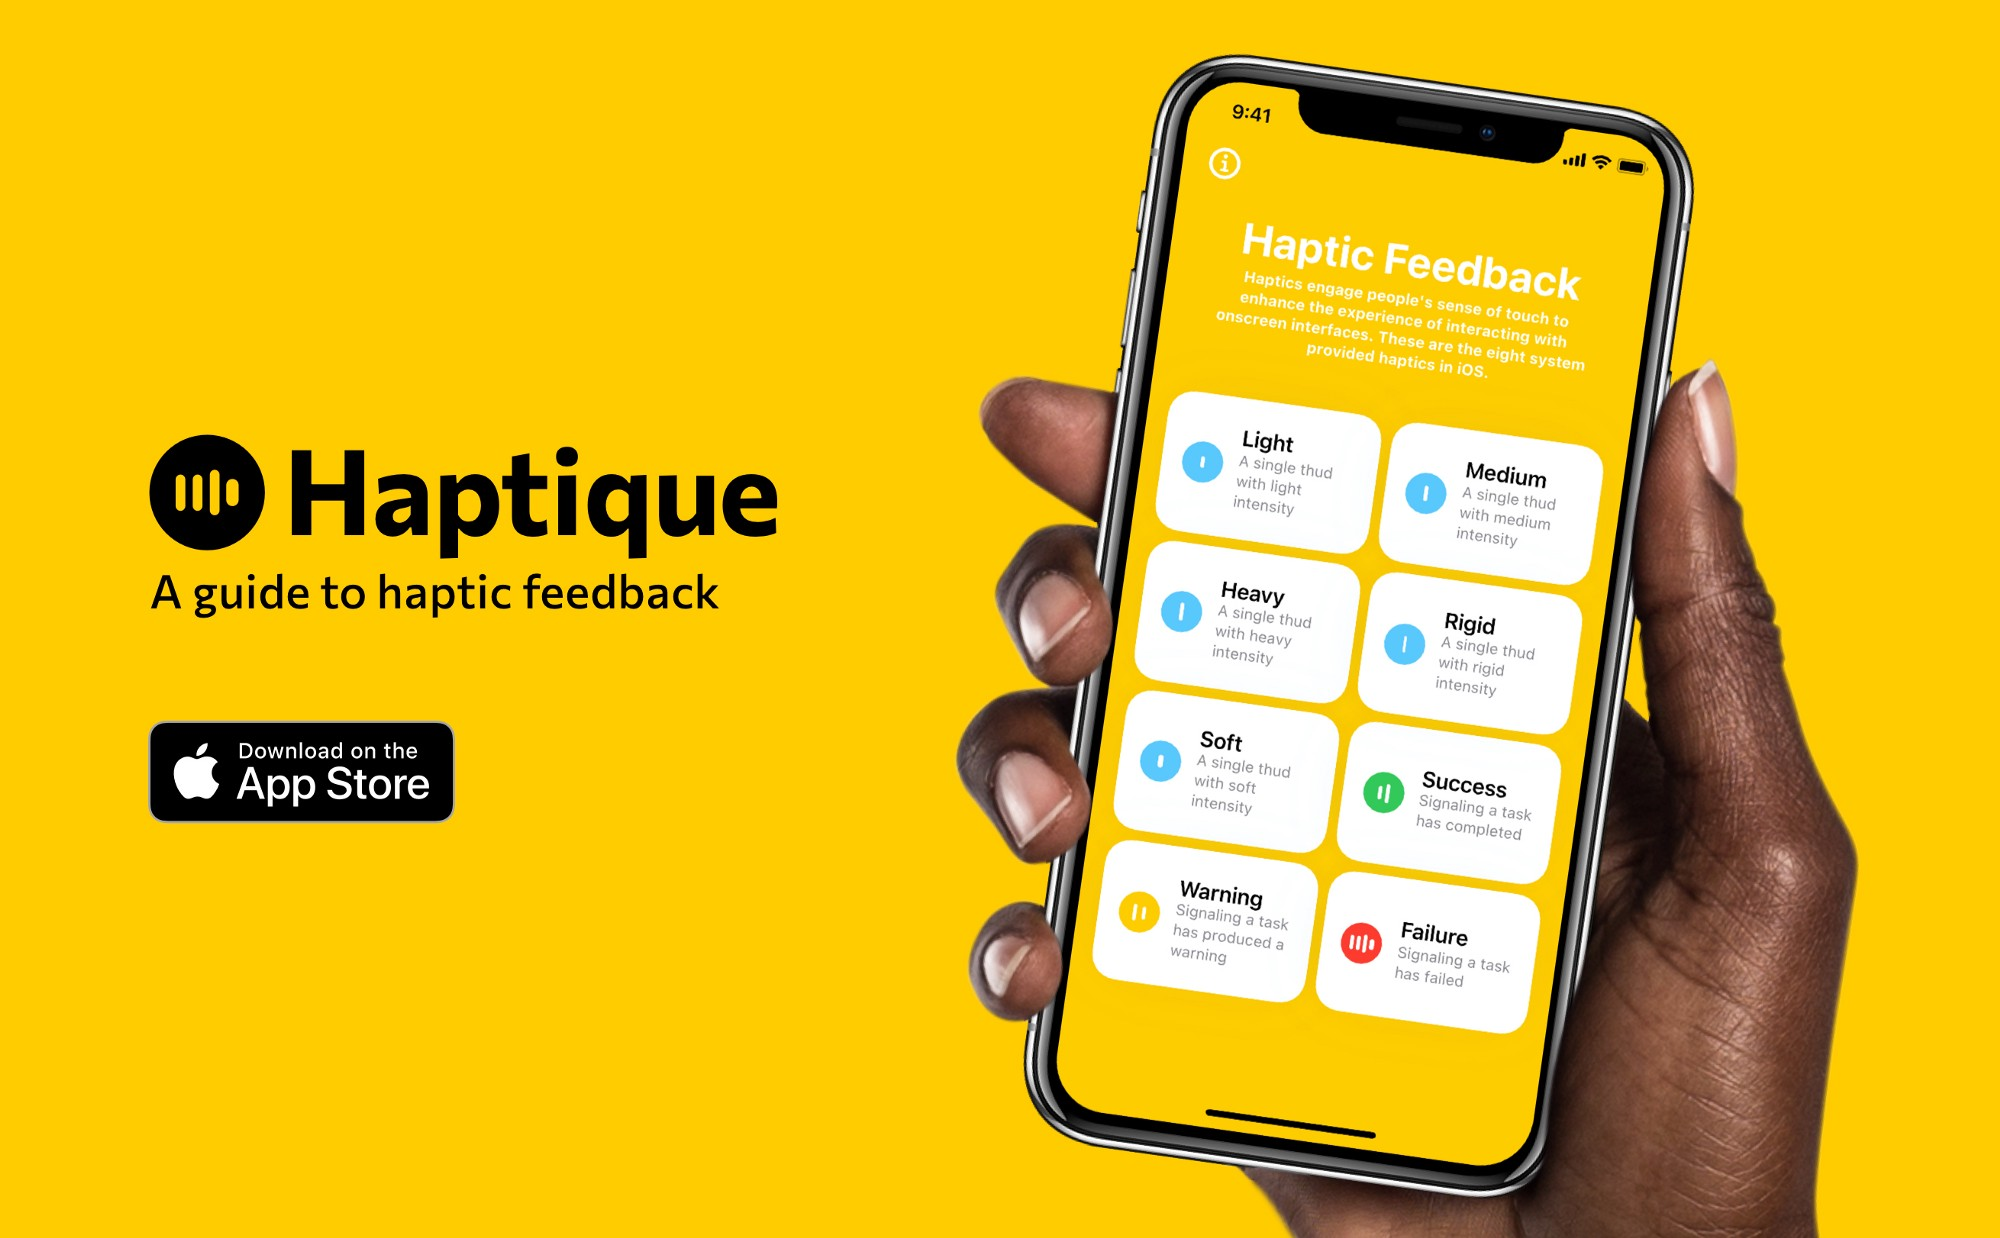 Product image of Haptique — Woman holding iPhone with Haptique